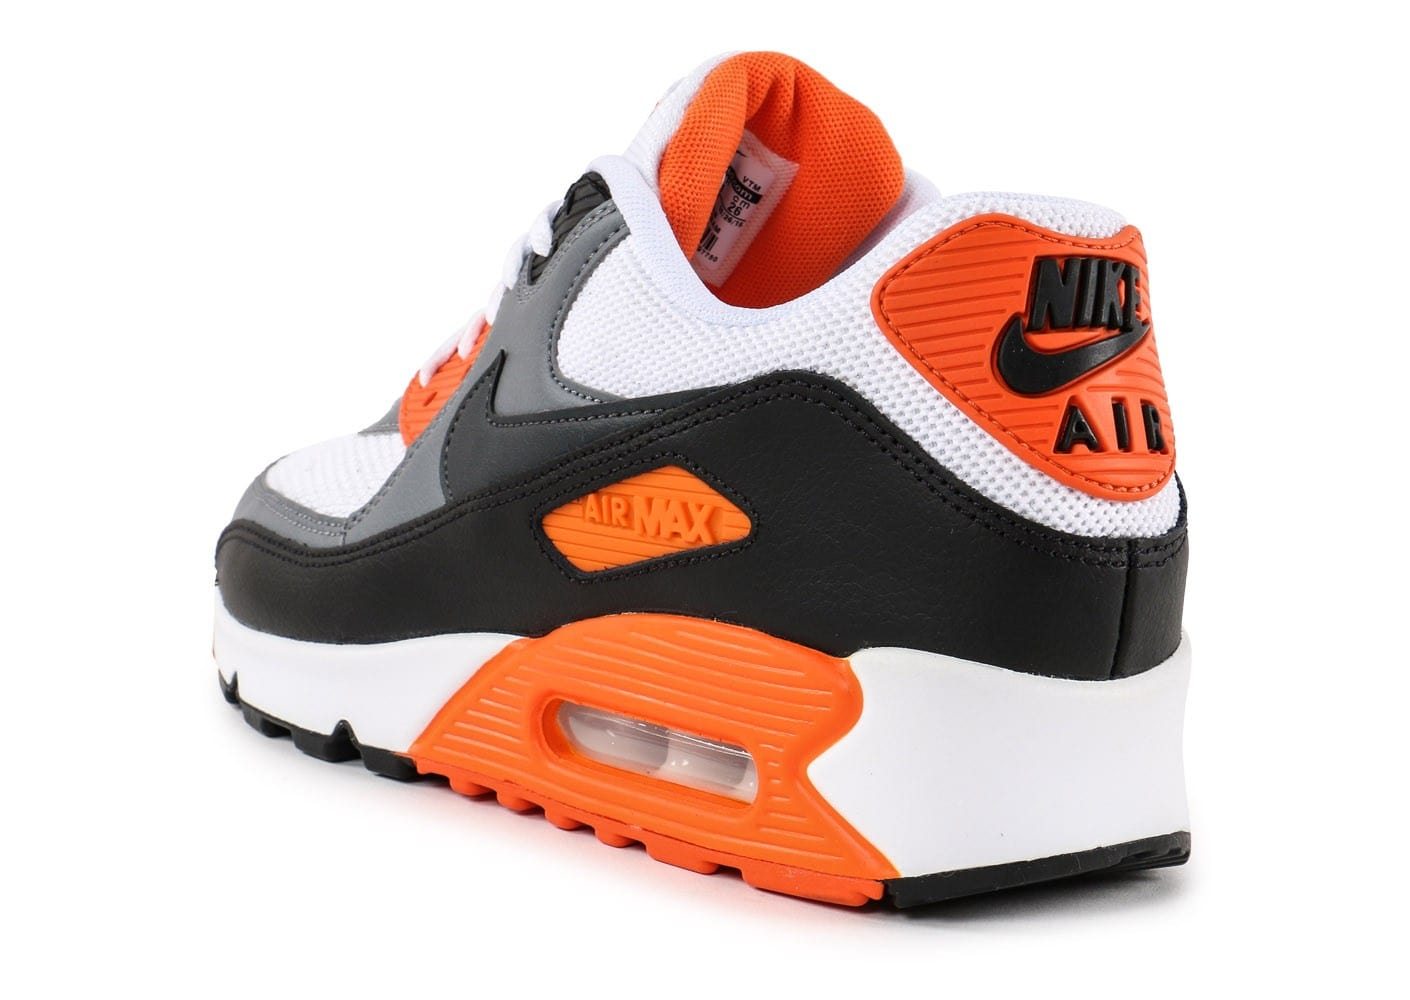 nike air max 90 ancien modele